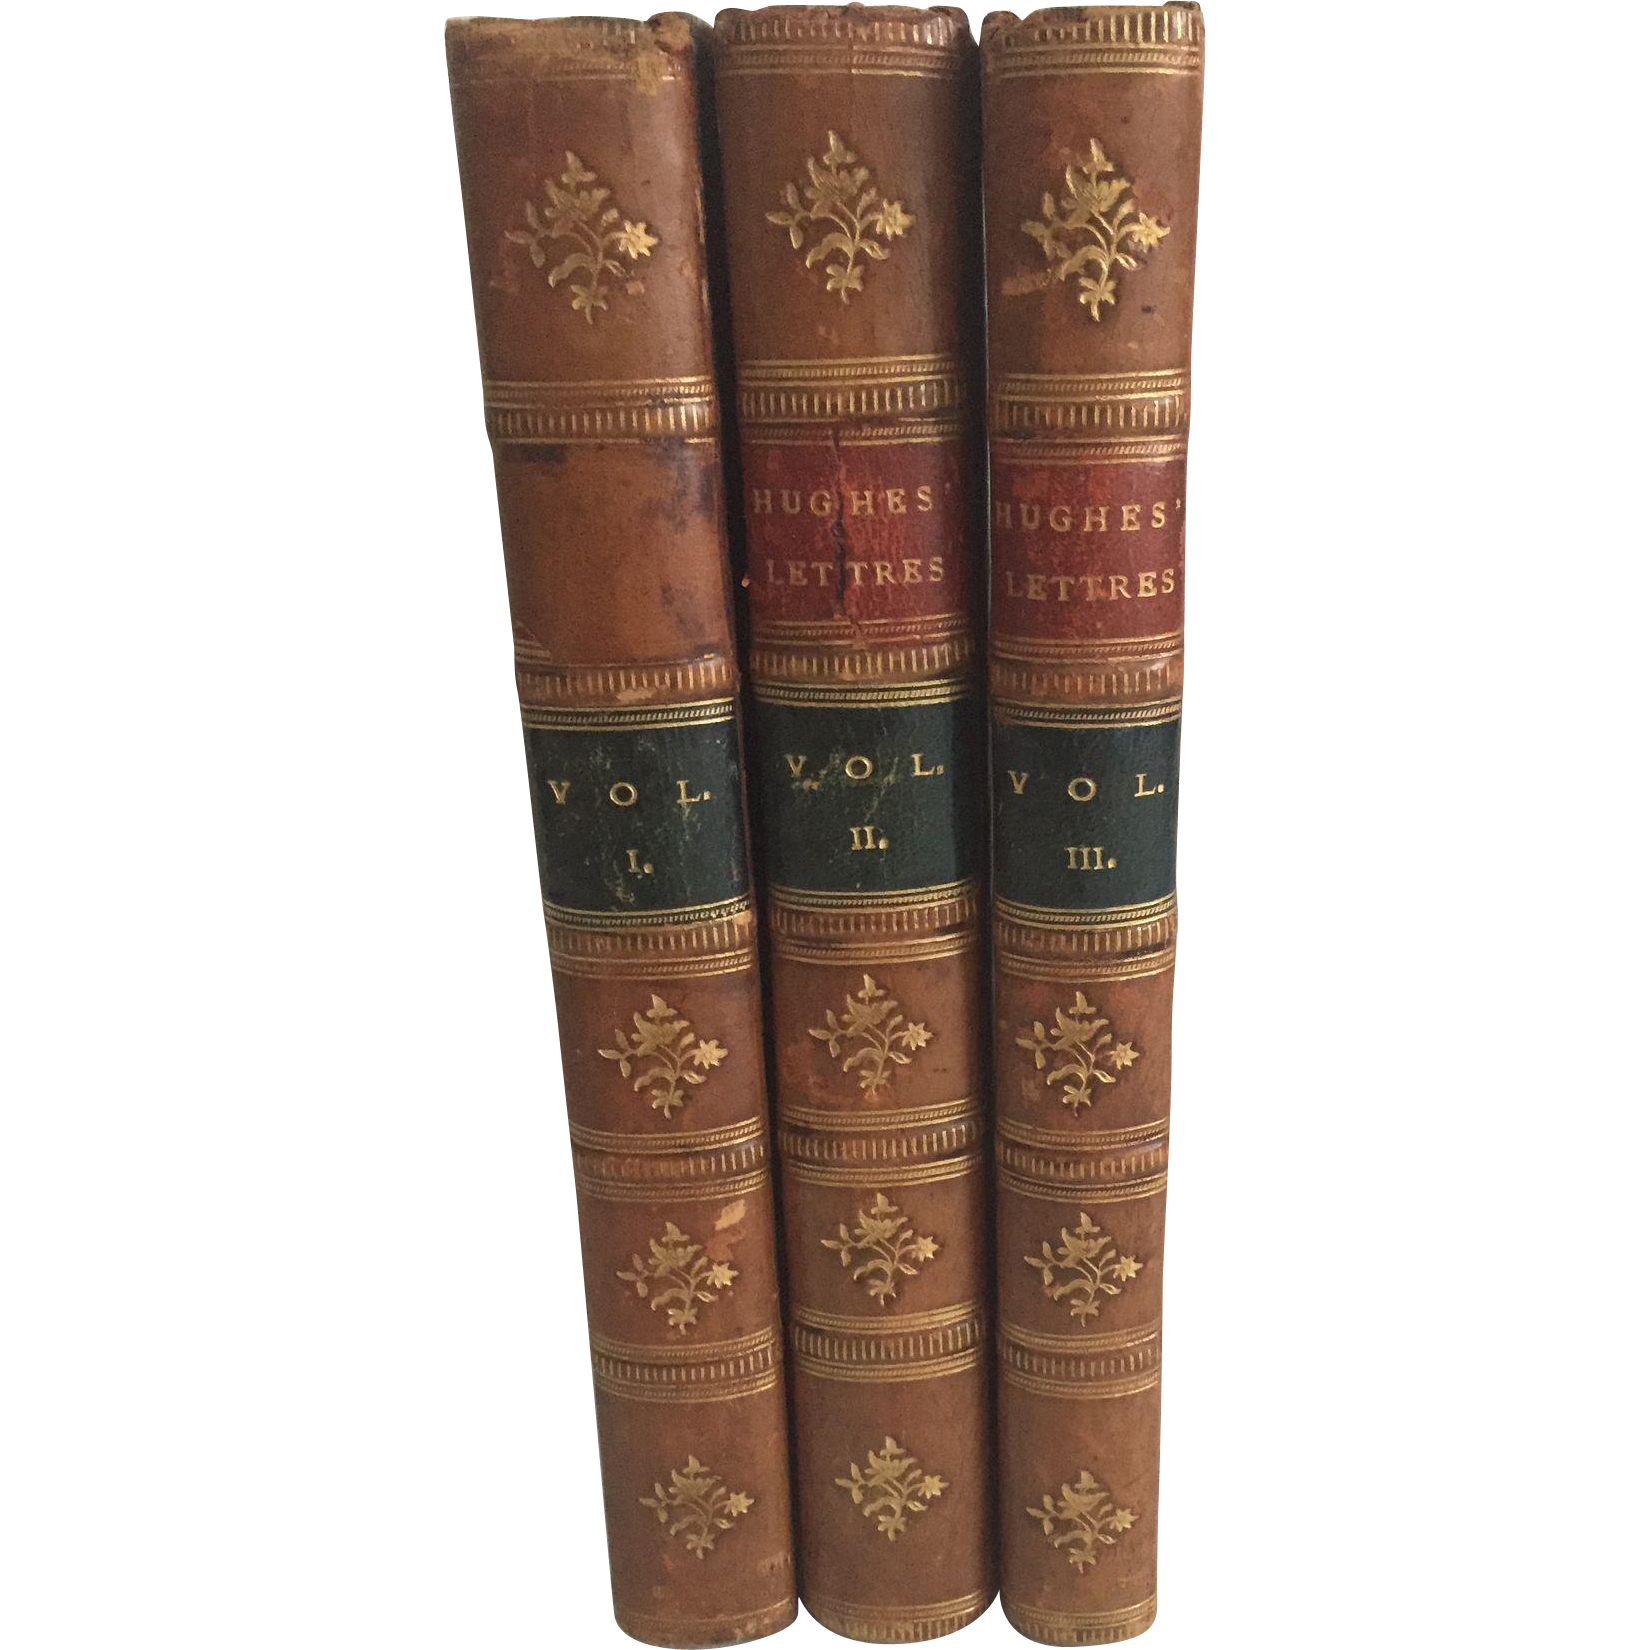 Letters by John Hughes, ESQ by John Duncombe, 3 Volumes, 1773, The Second Edition